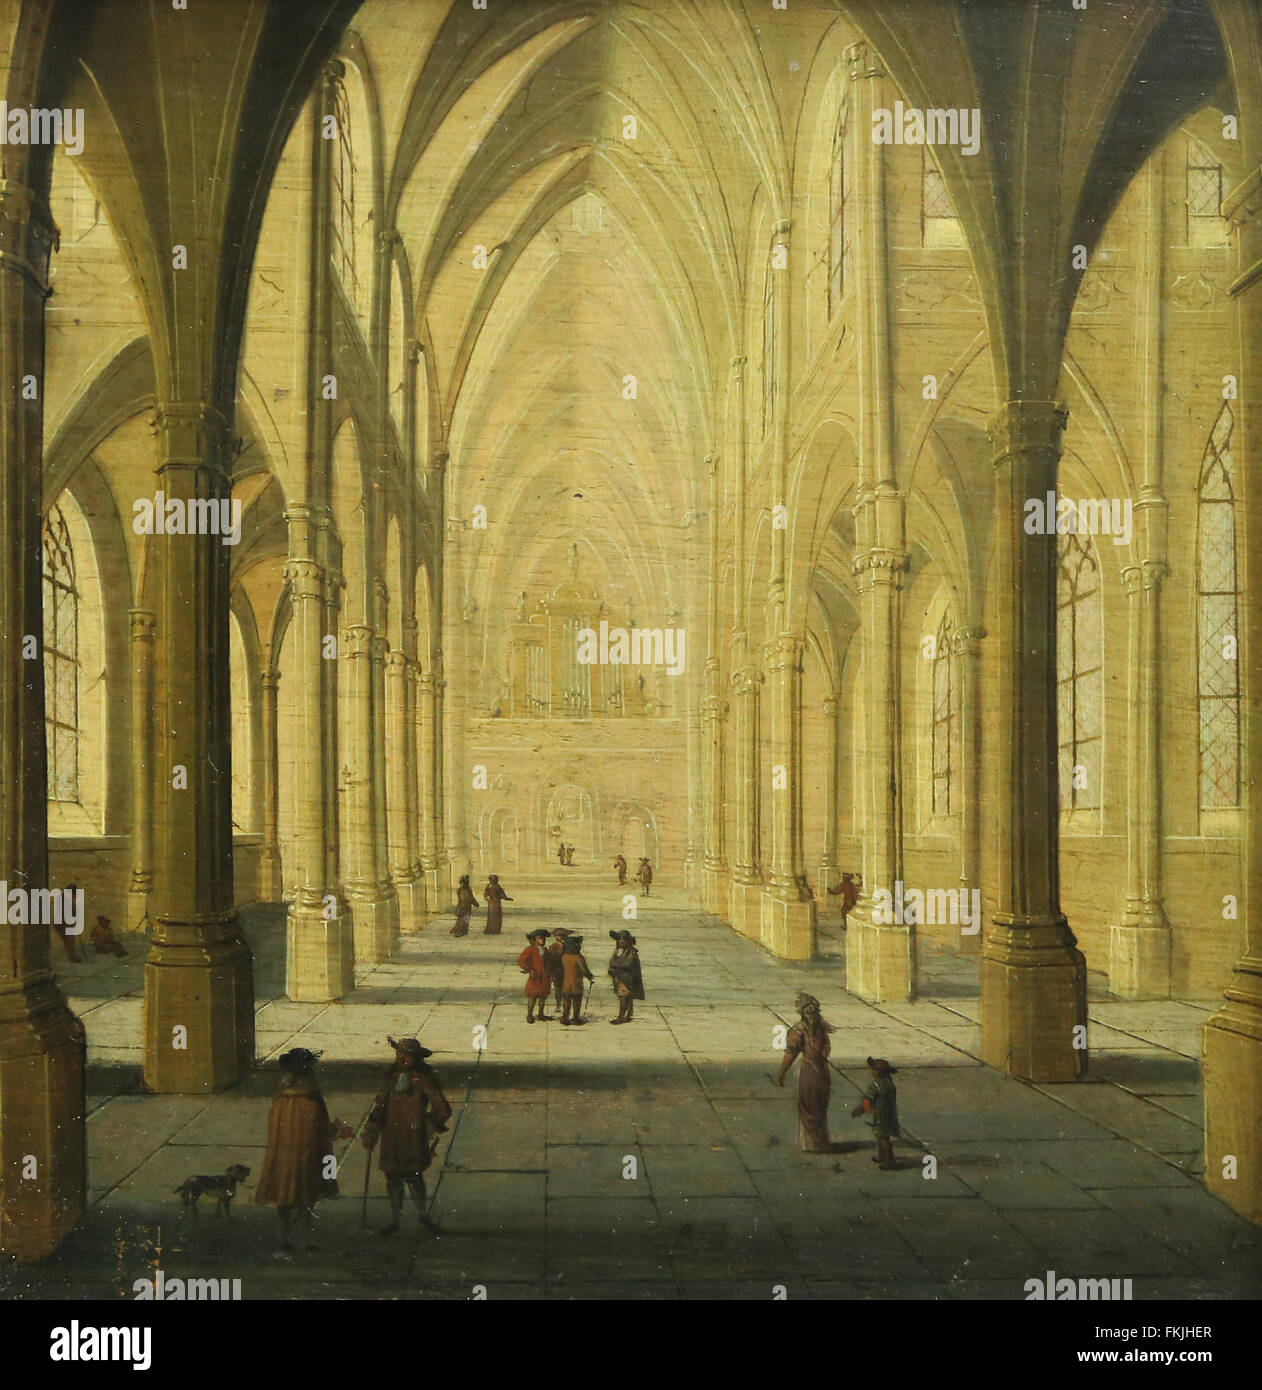 FLANDERS (or Holland?). 17th c. Interior Church. View from the choir. Formerly attributed to Neefs then Baden. Louvre - Stock Image